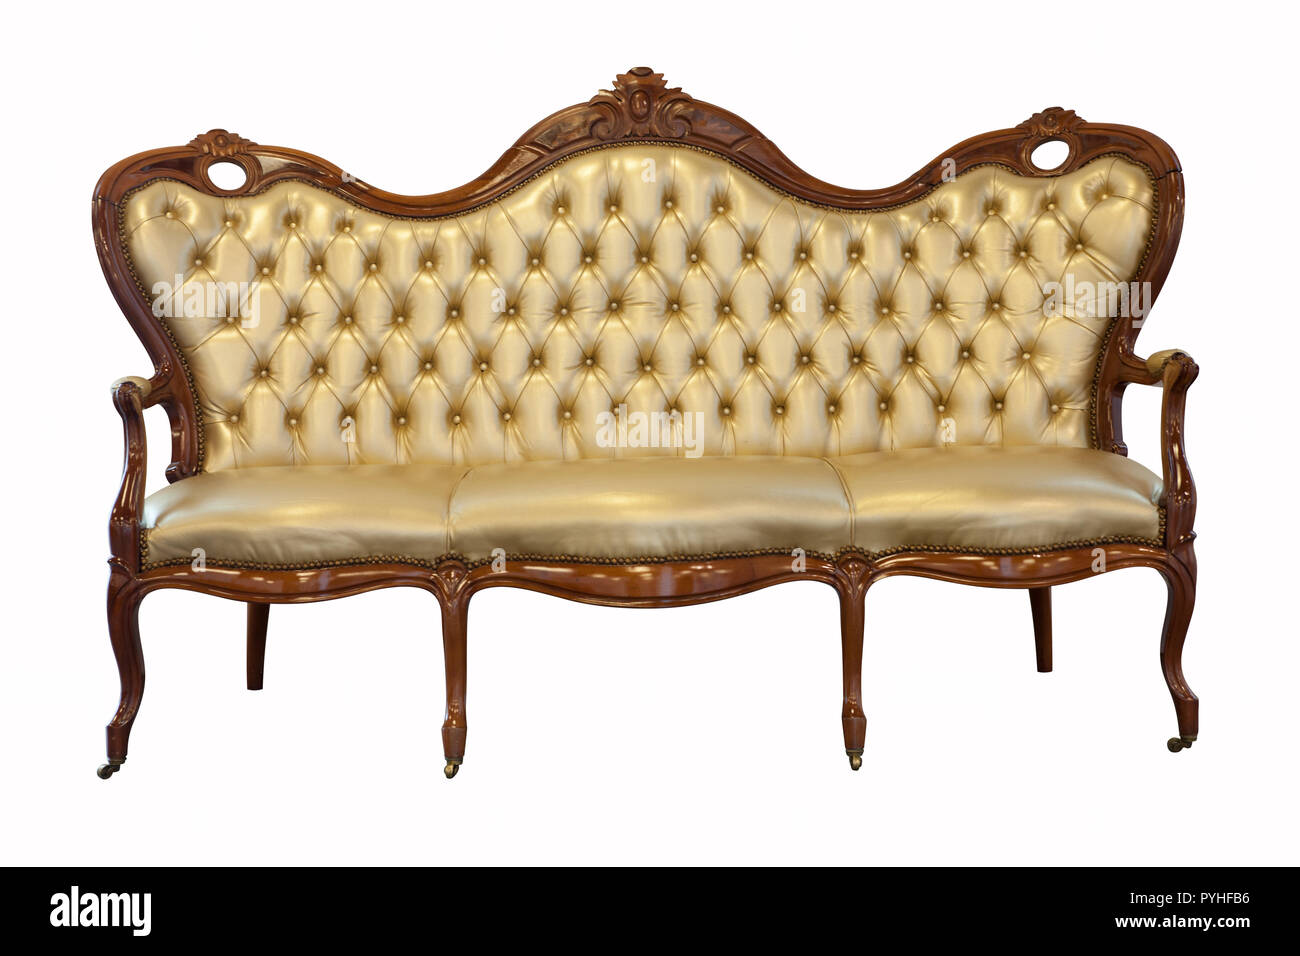 Vintage Couch High Resolution Stock Photography And Images Alamy